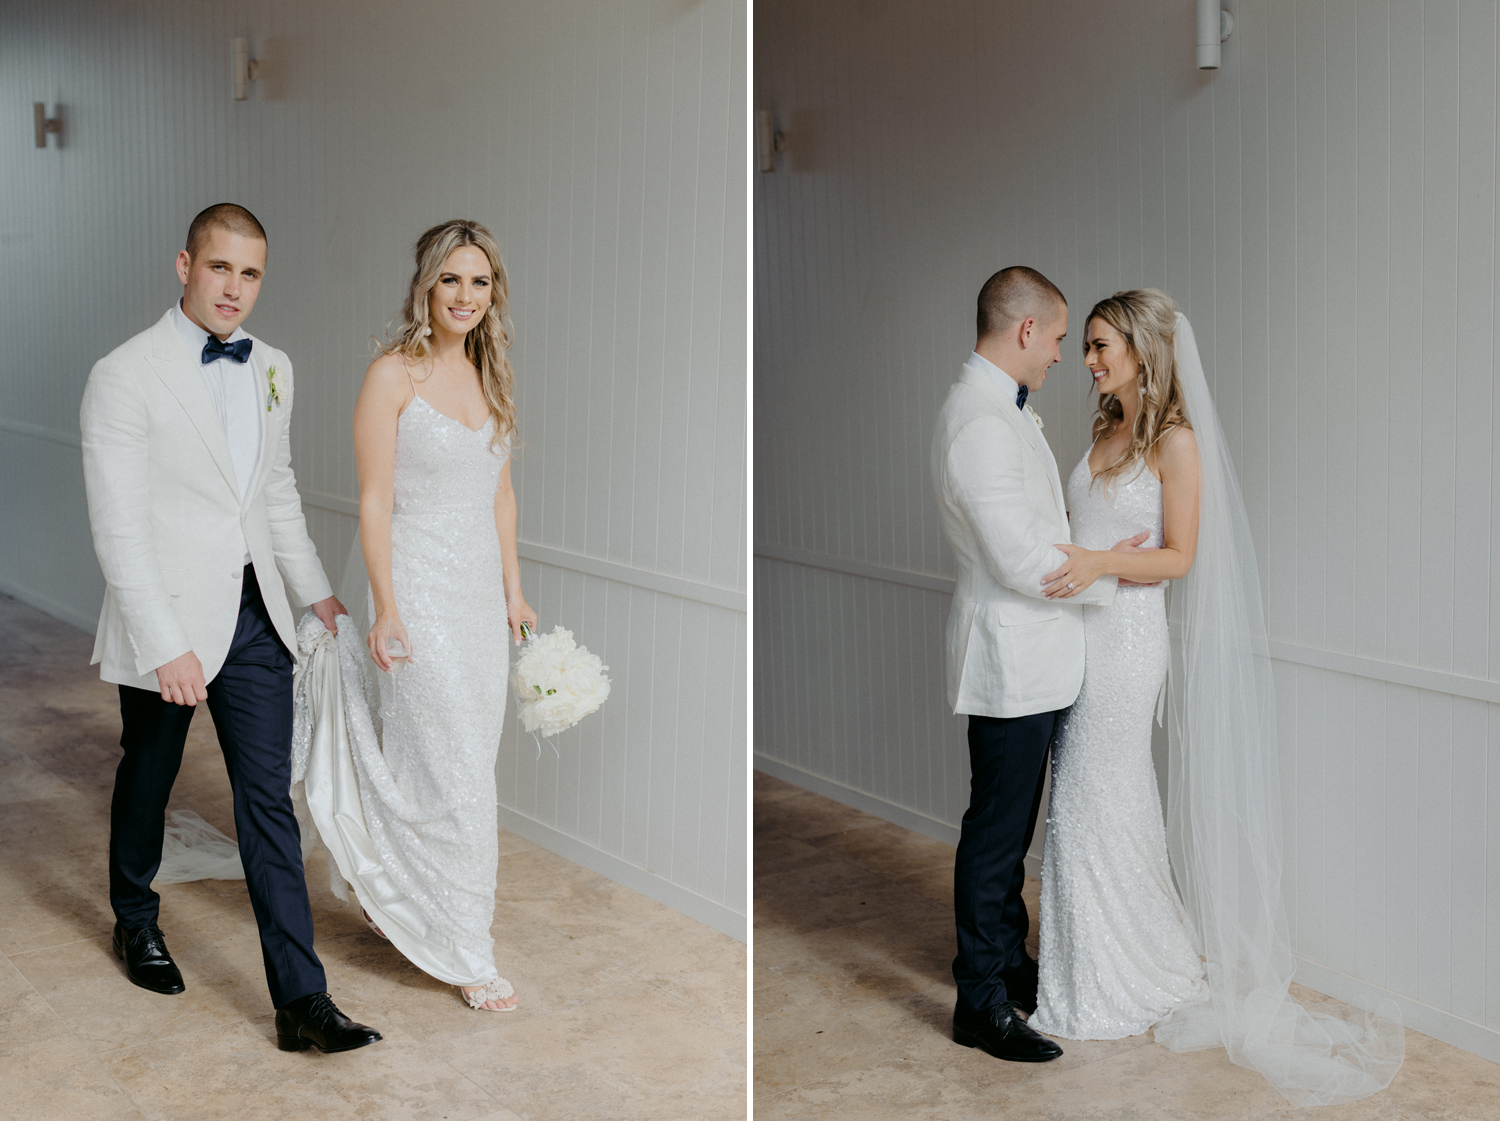 Bannisters Wedding